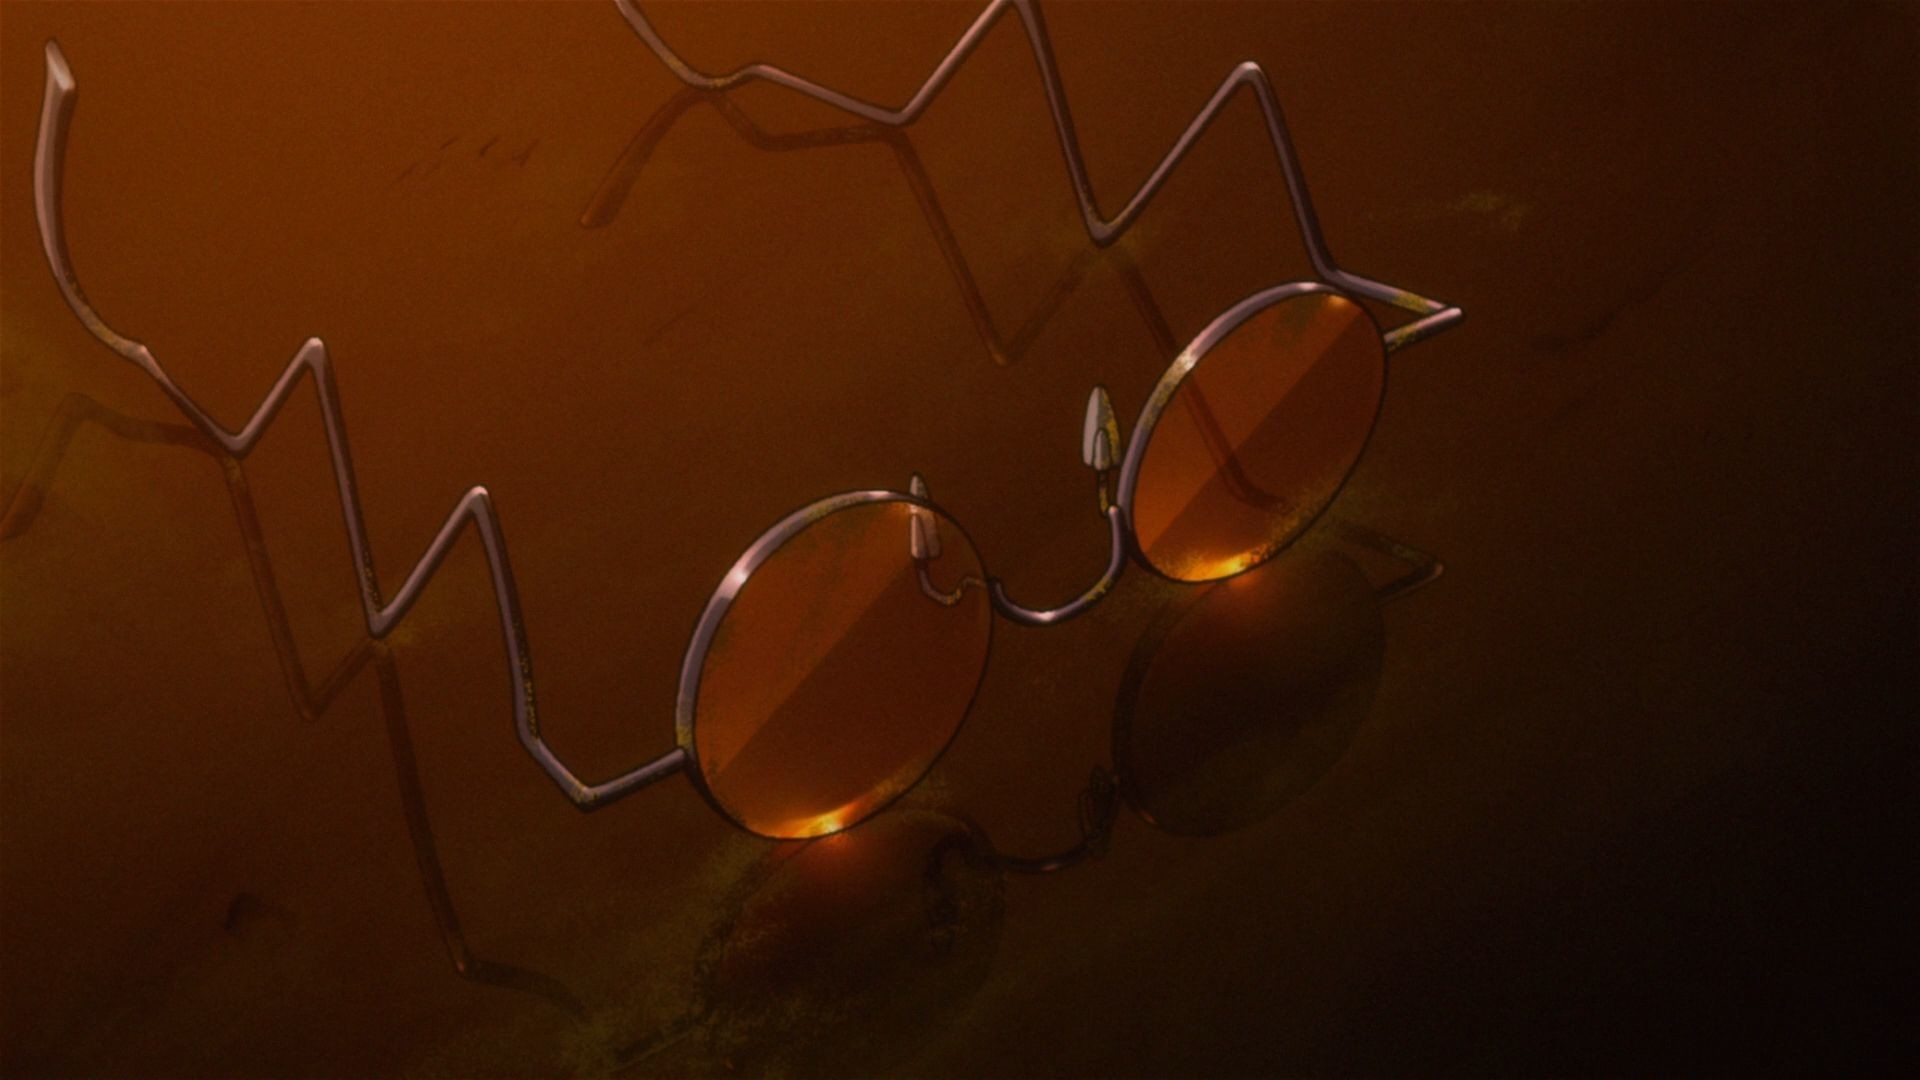 Res: 1920x1080, Vash the Stampede glasses.